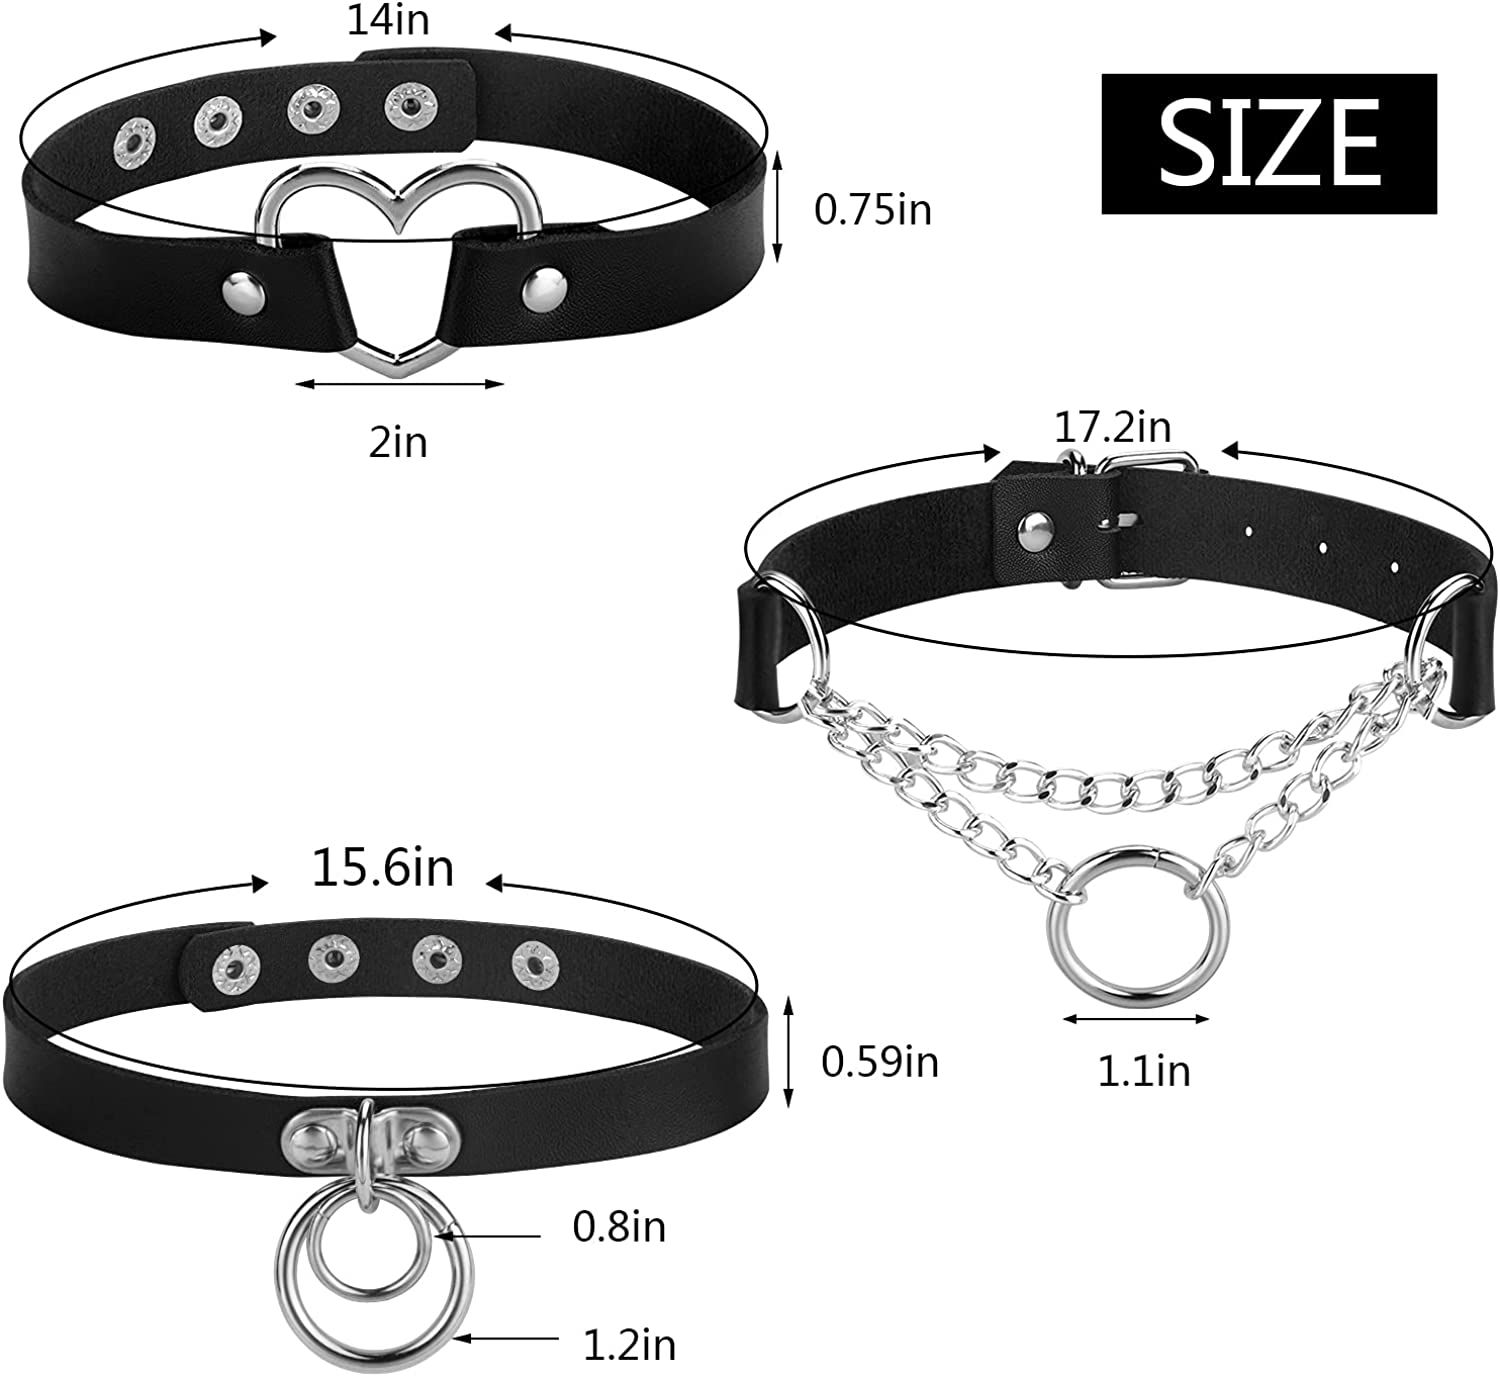 Hazms 15pcs PU Leather Choker Necklace Goth Chokers for Women Adjustable Black Punk Choker Set Gift for Women Girls Cosplay Accessories